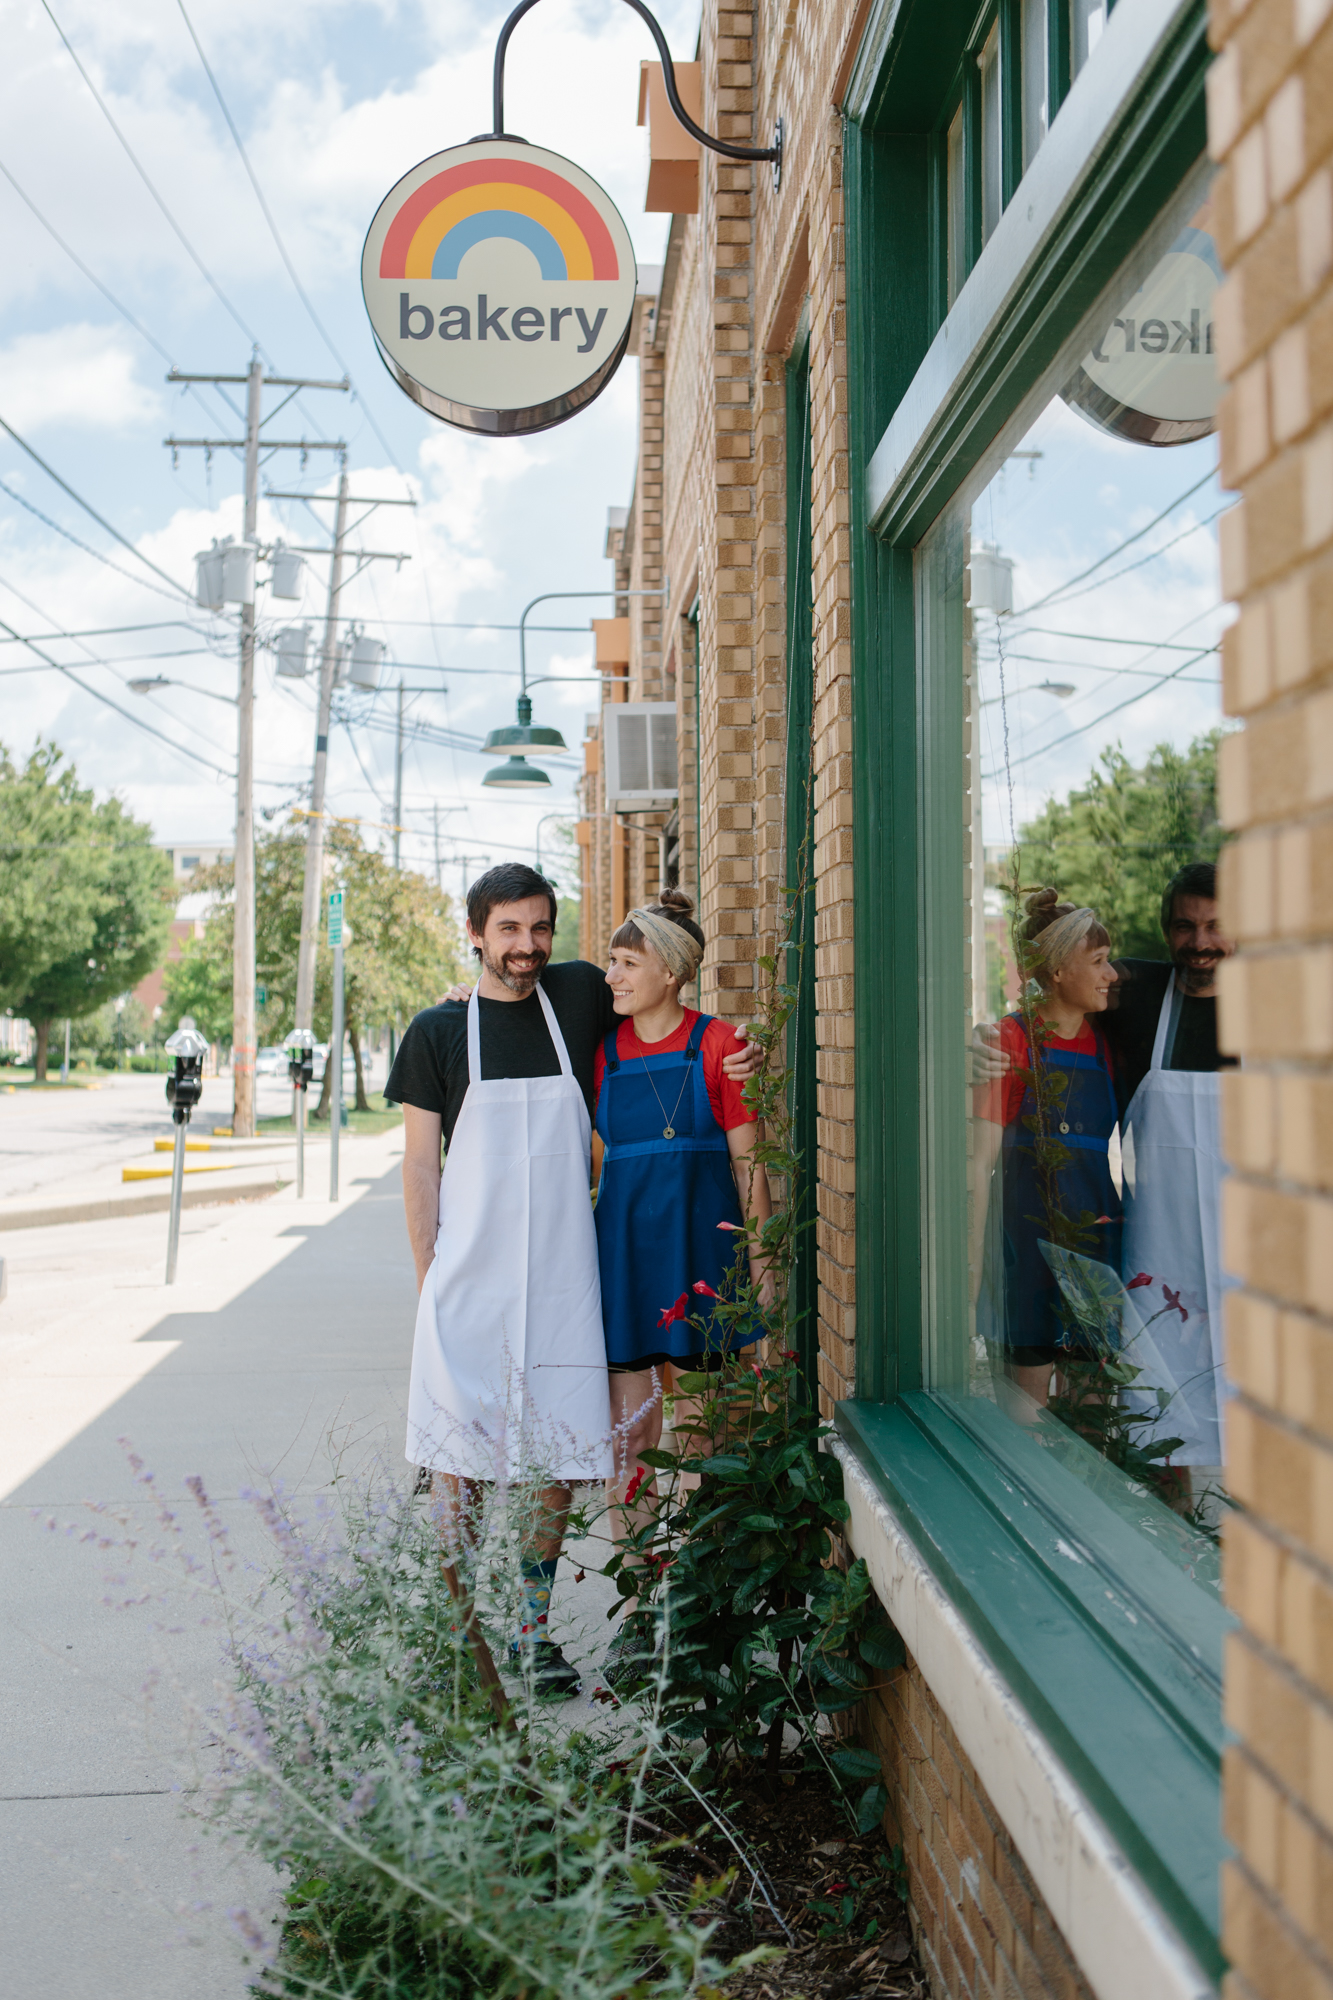 Editorial photo of Rainbow Bakery's owners in Bloomington, Indiana.